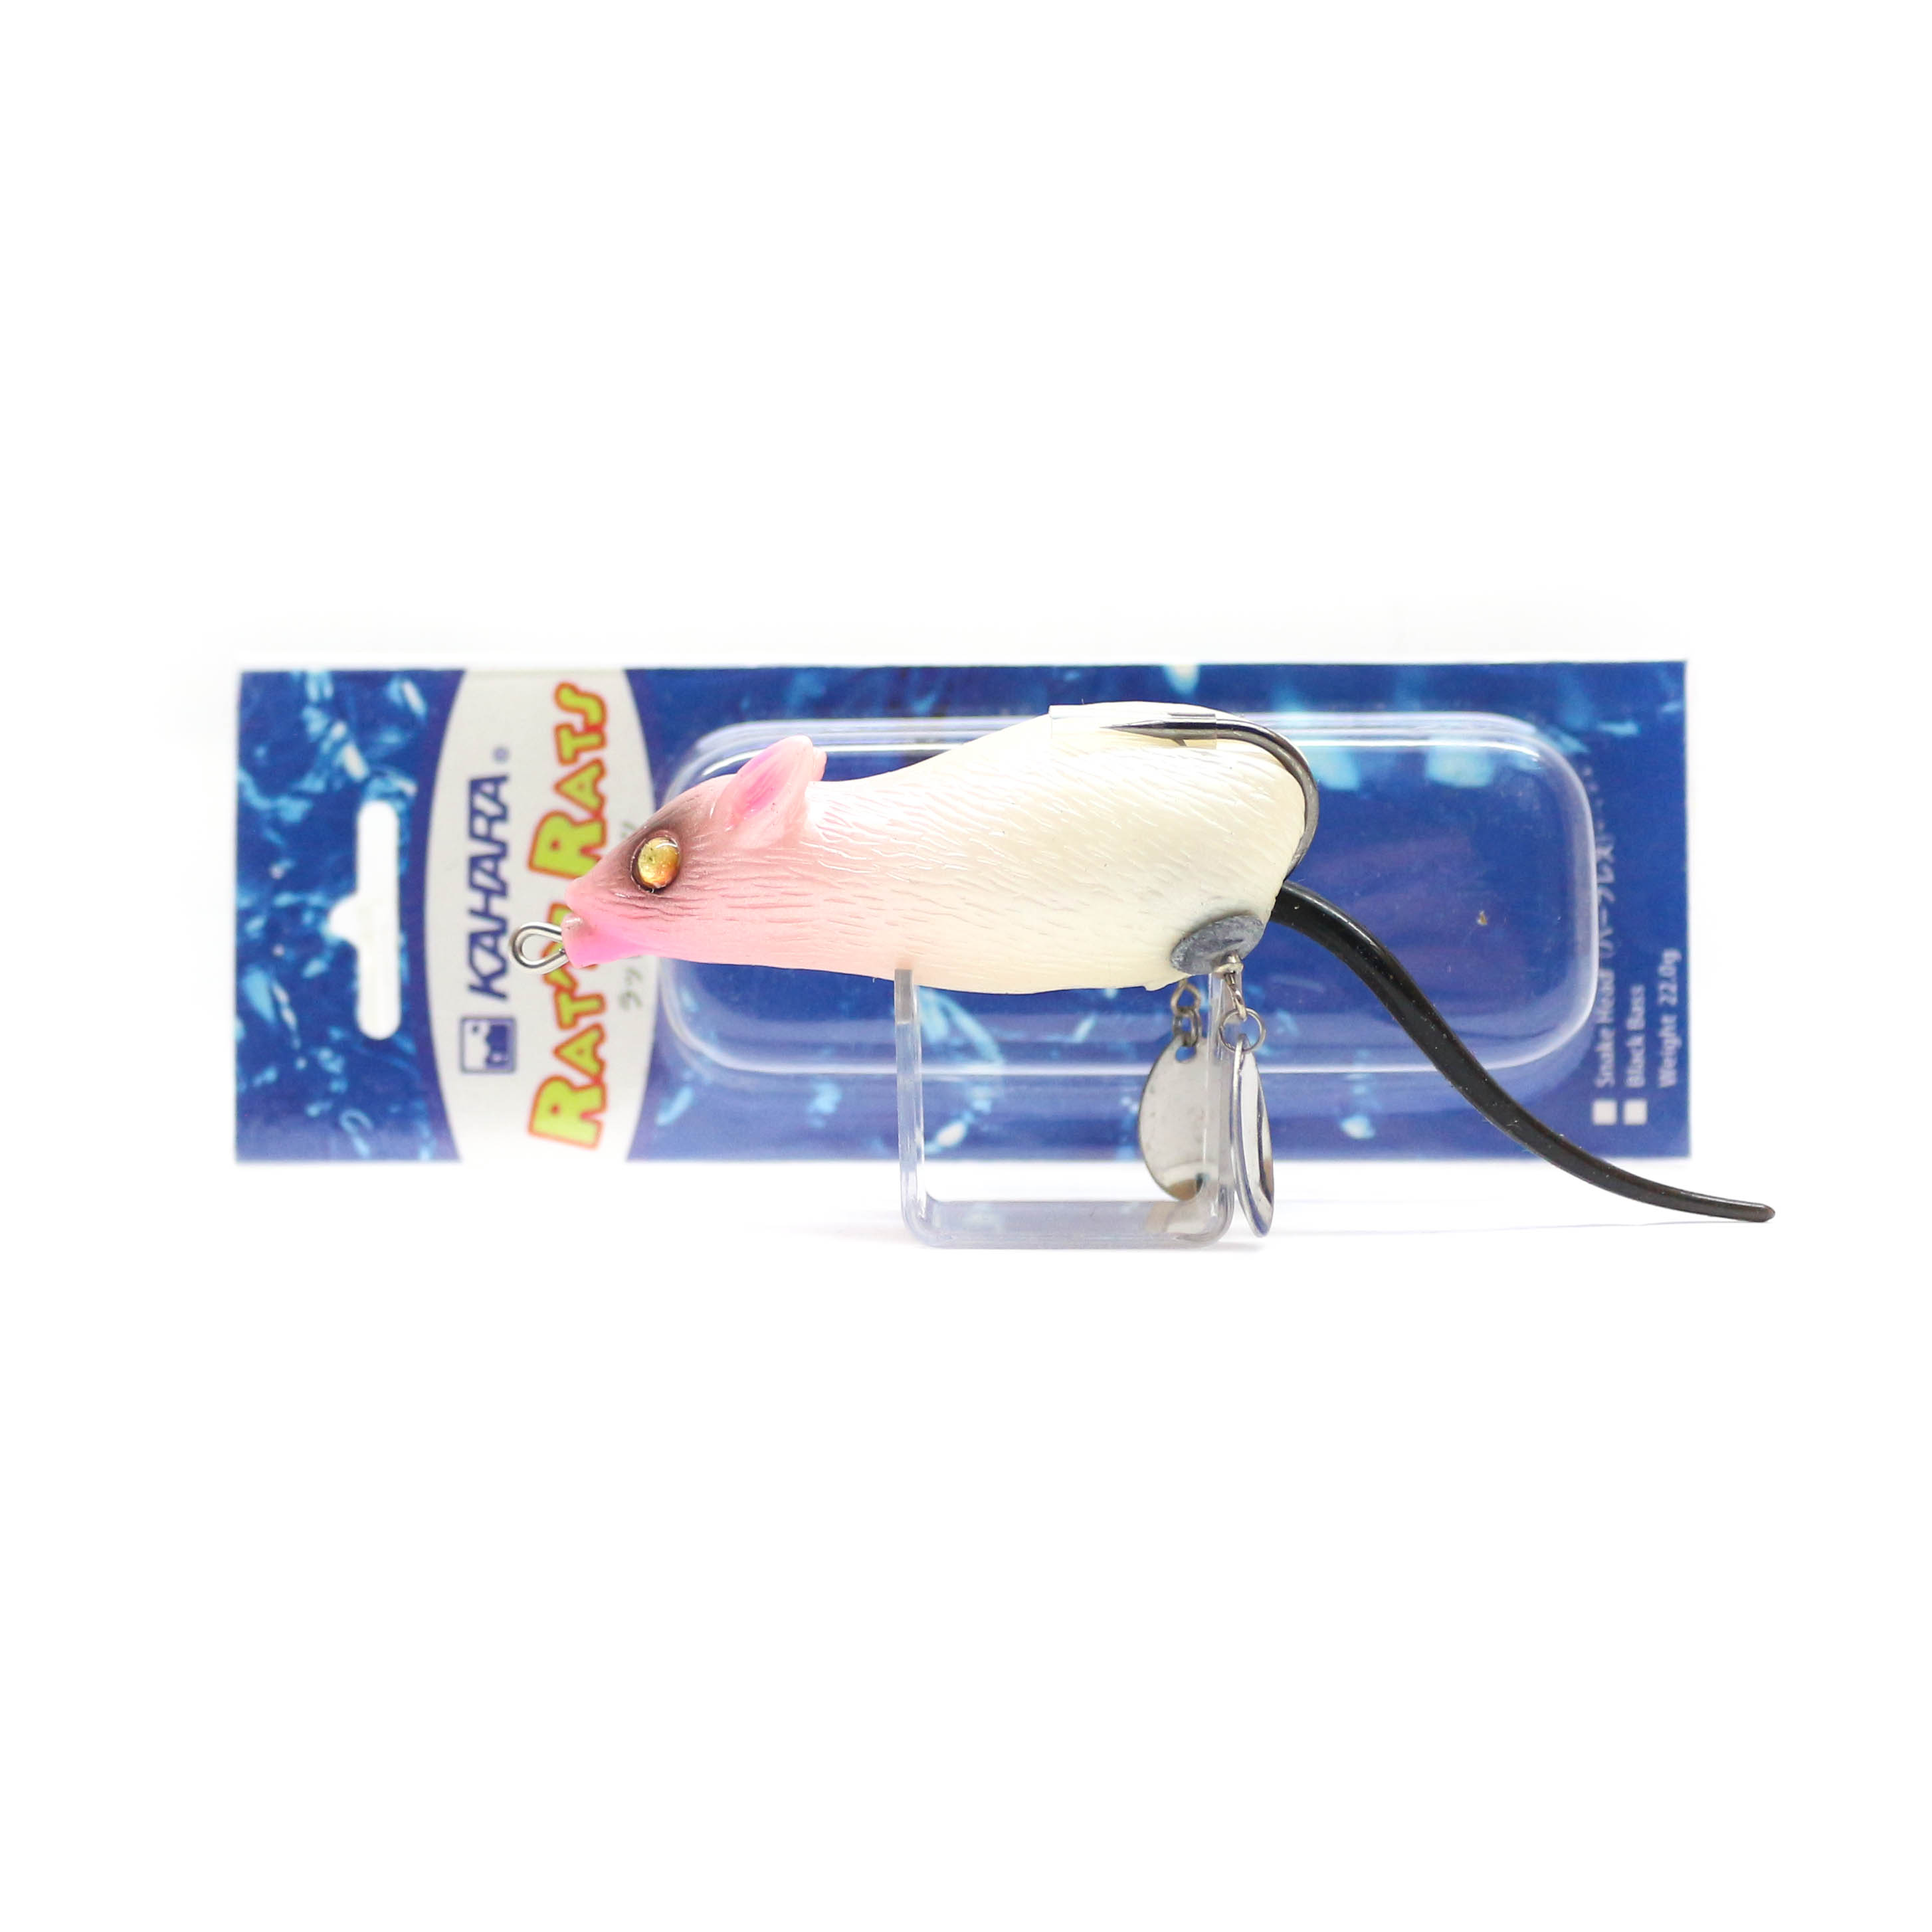 Kahara Rat'n Rats Soft Plastic Floating Lure 06B (0119)